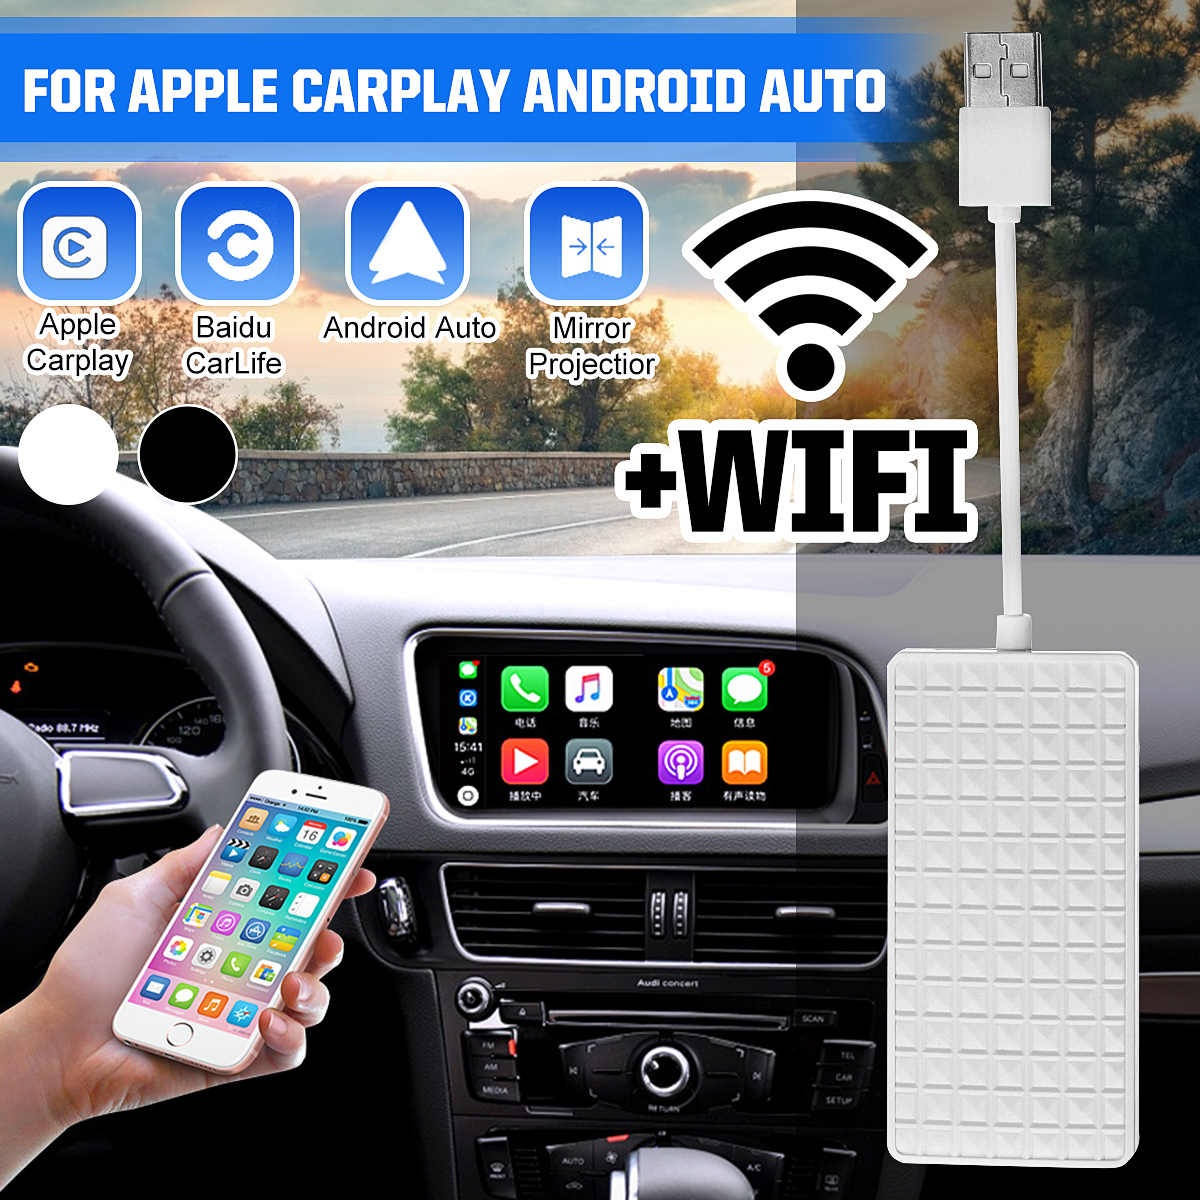 Wireless WIFI USB Dongle Smart Link untuk Apple Carplay Dongle untuk Android Navigasi Pemain Mini USB Carplay Stick Modul